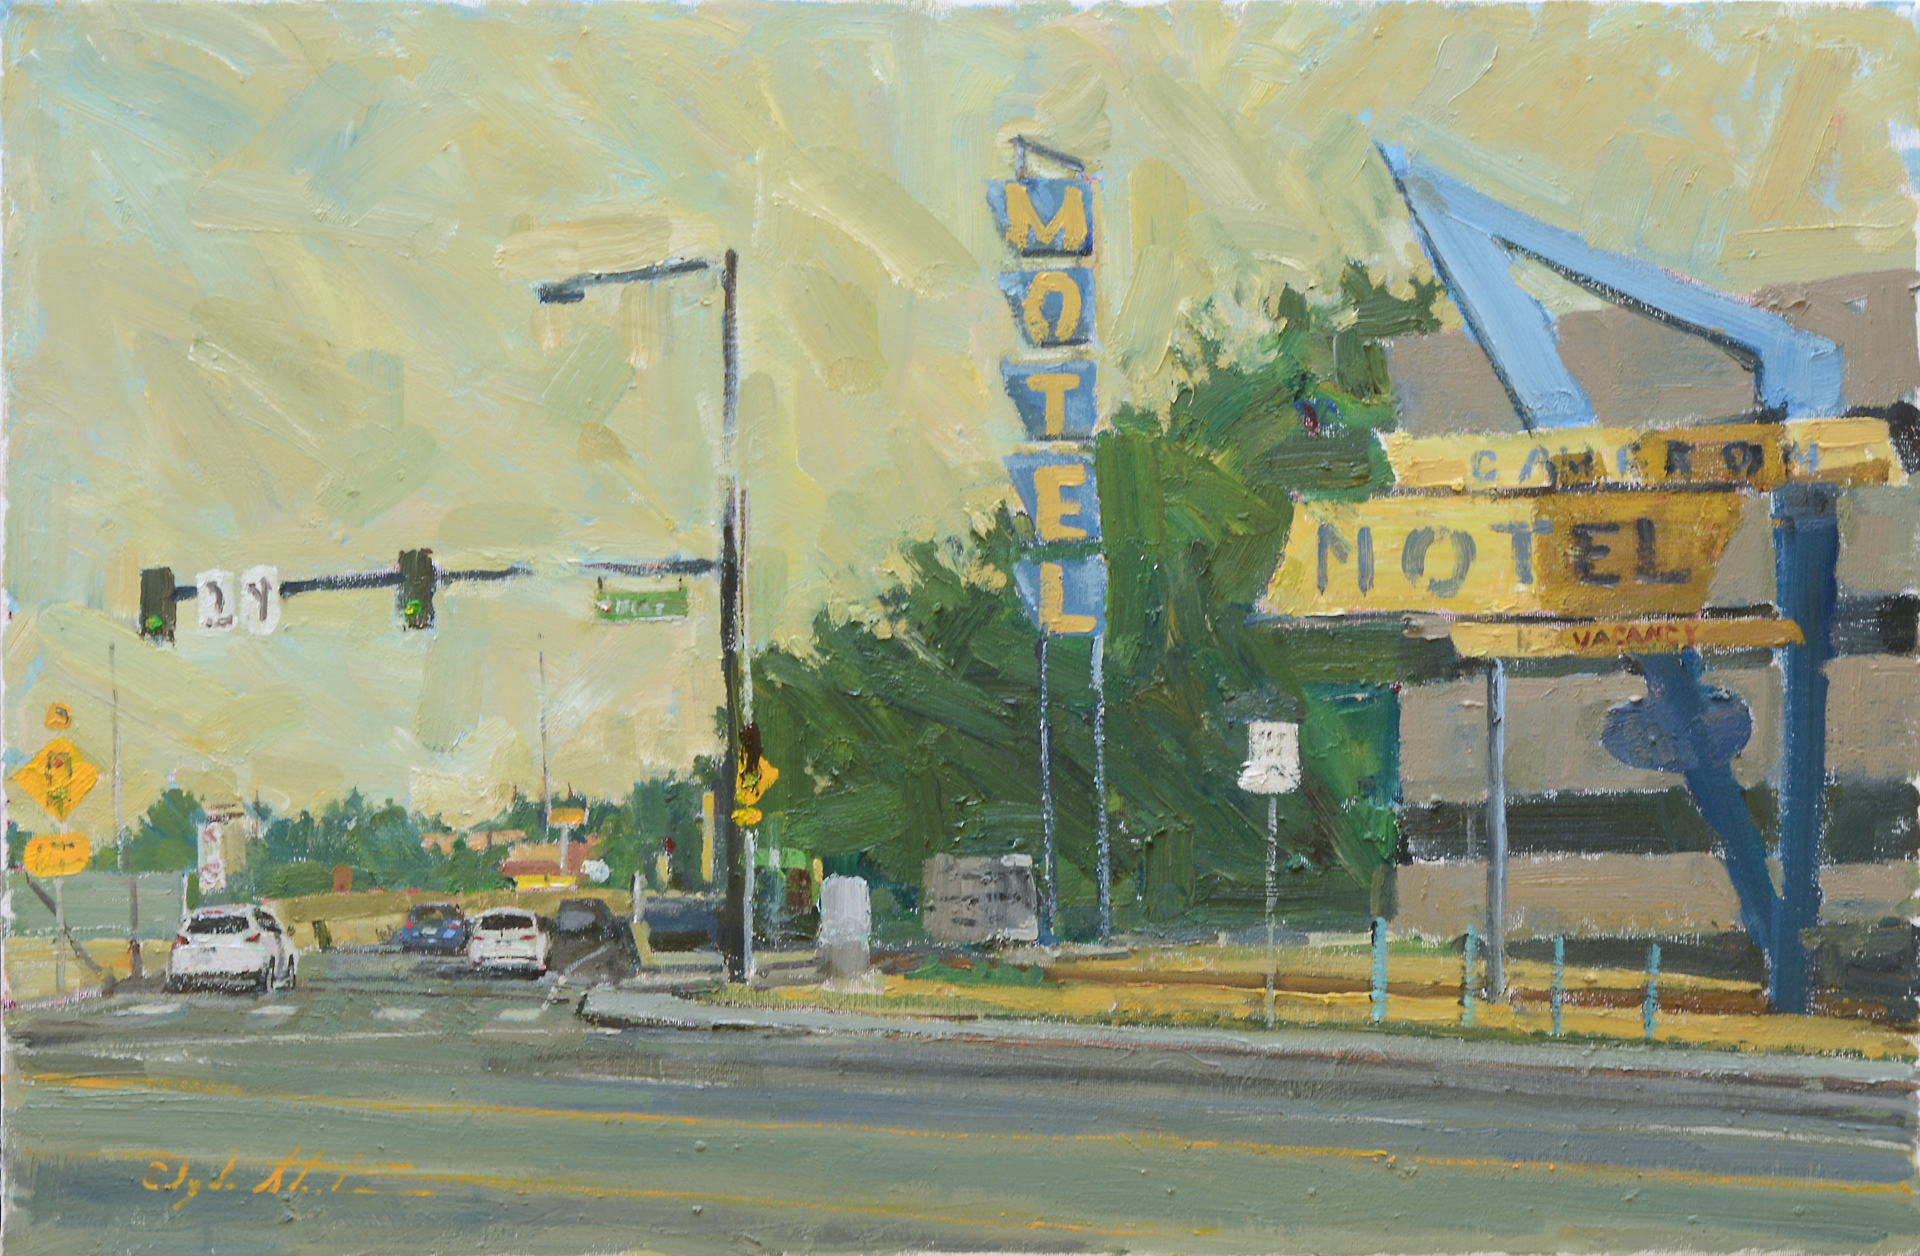 Cameron Motel by Clyde Steadman